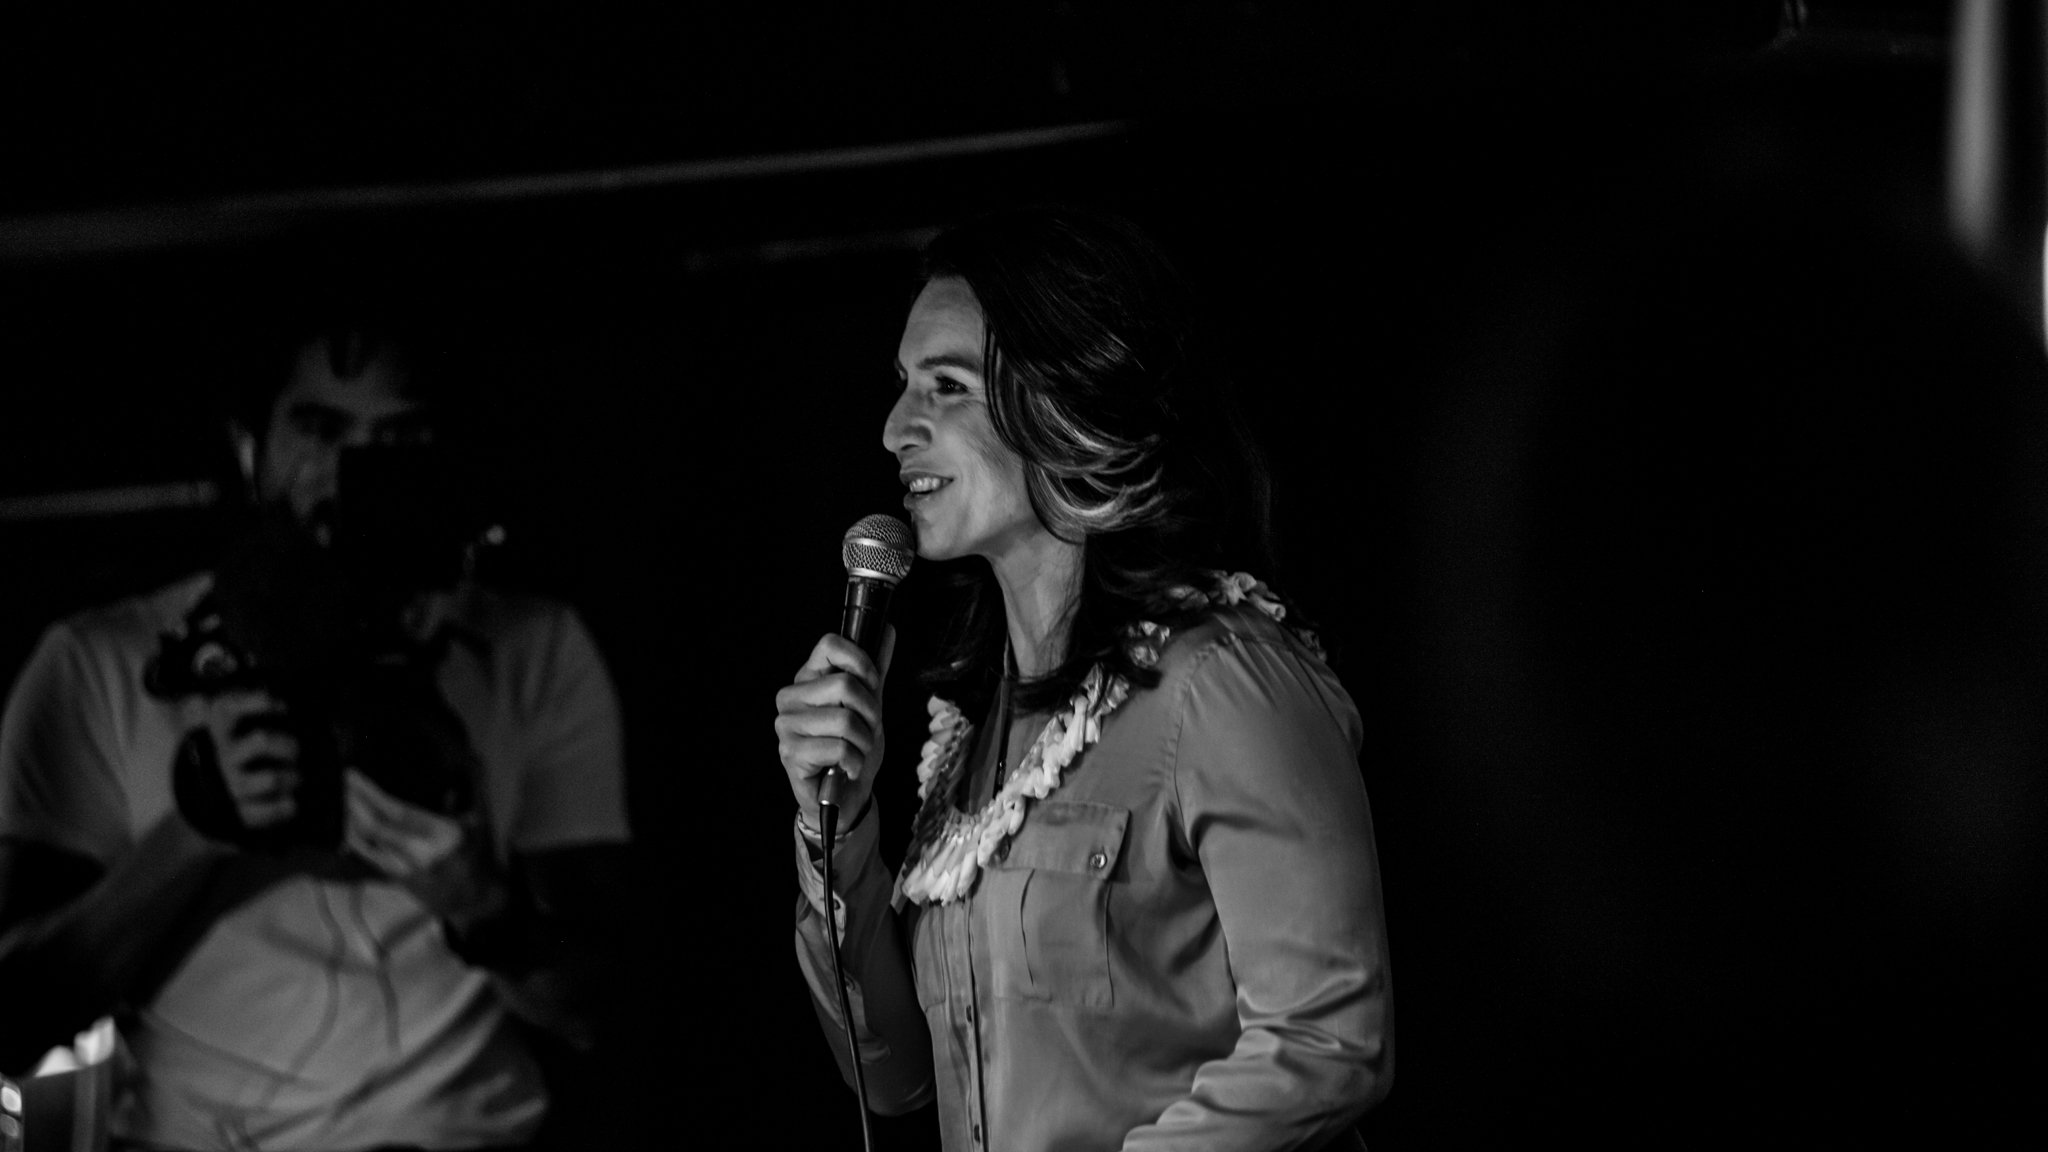 Tulsi Gabbard speaking at The Mill in Iowa City